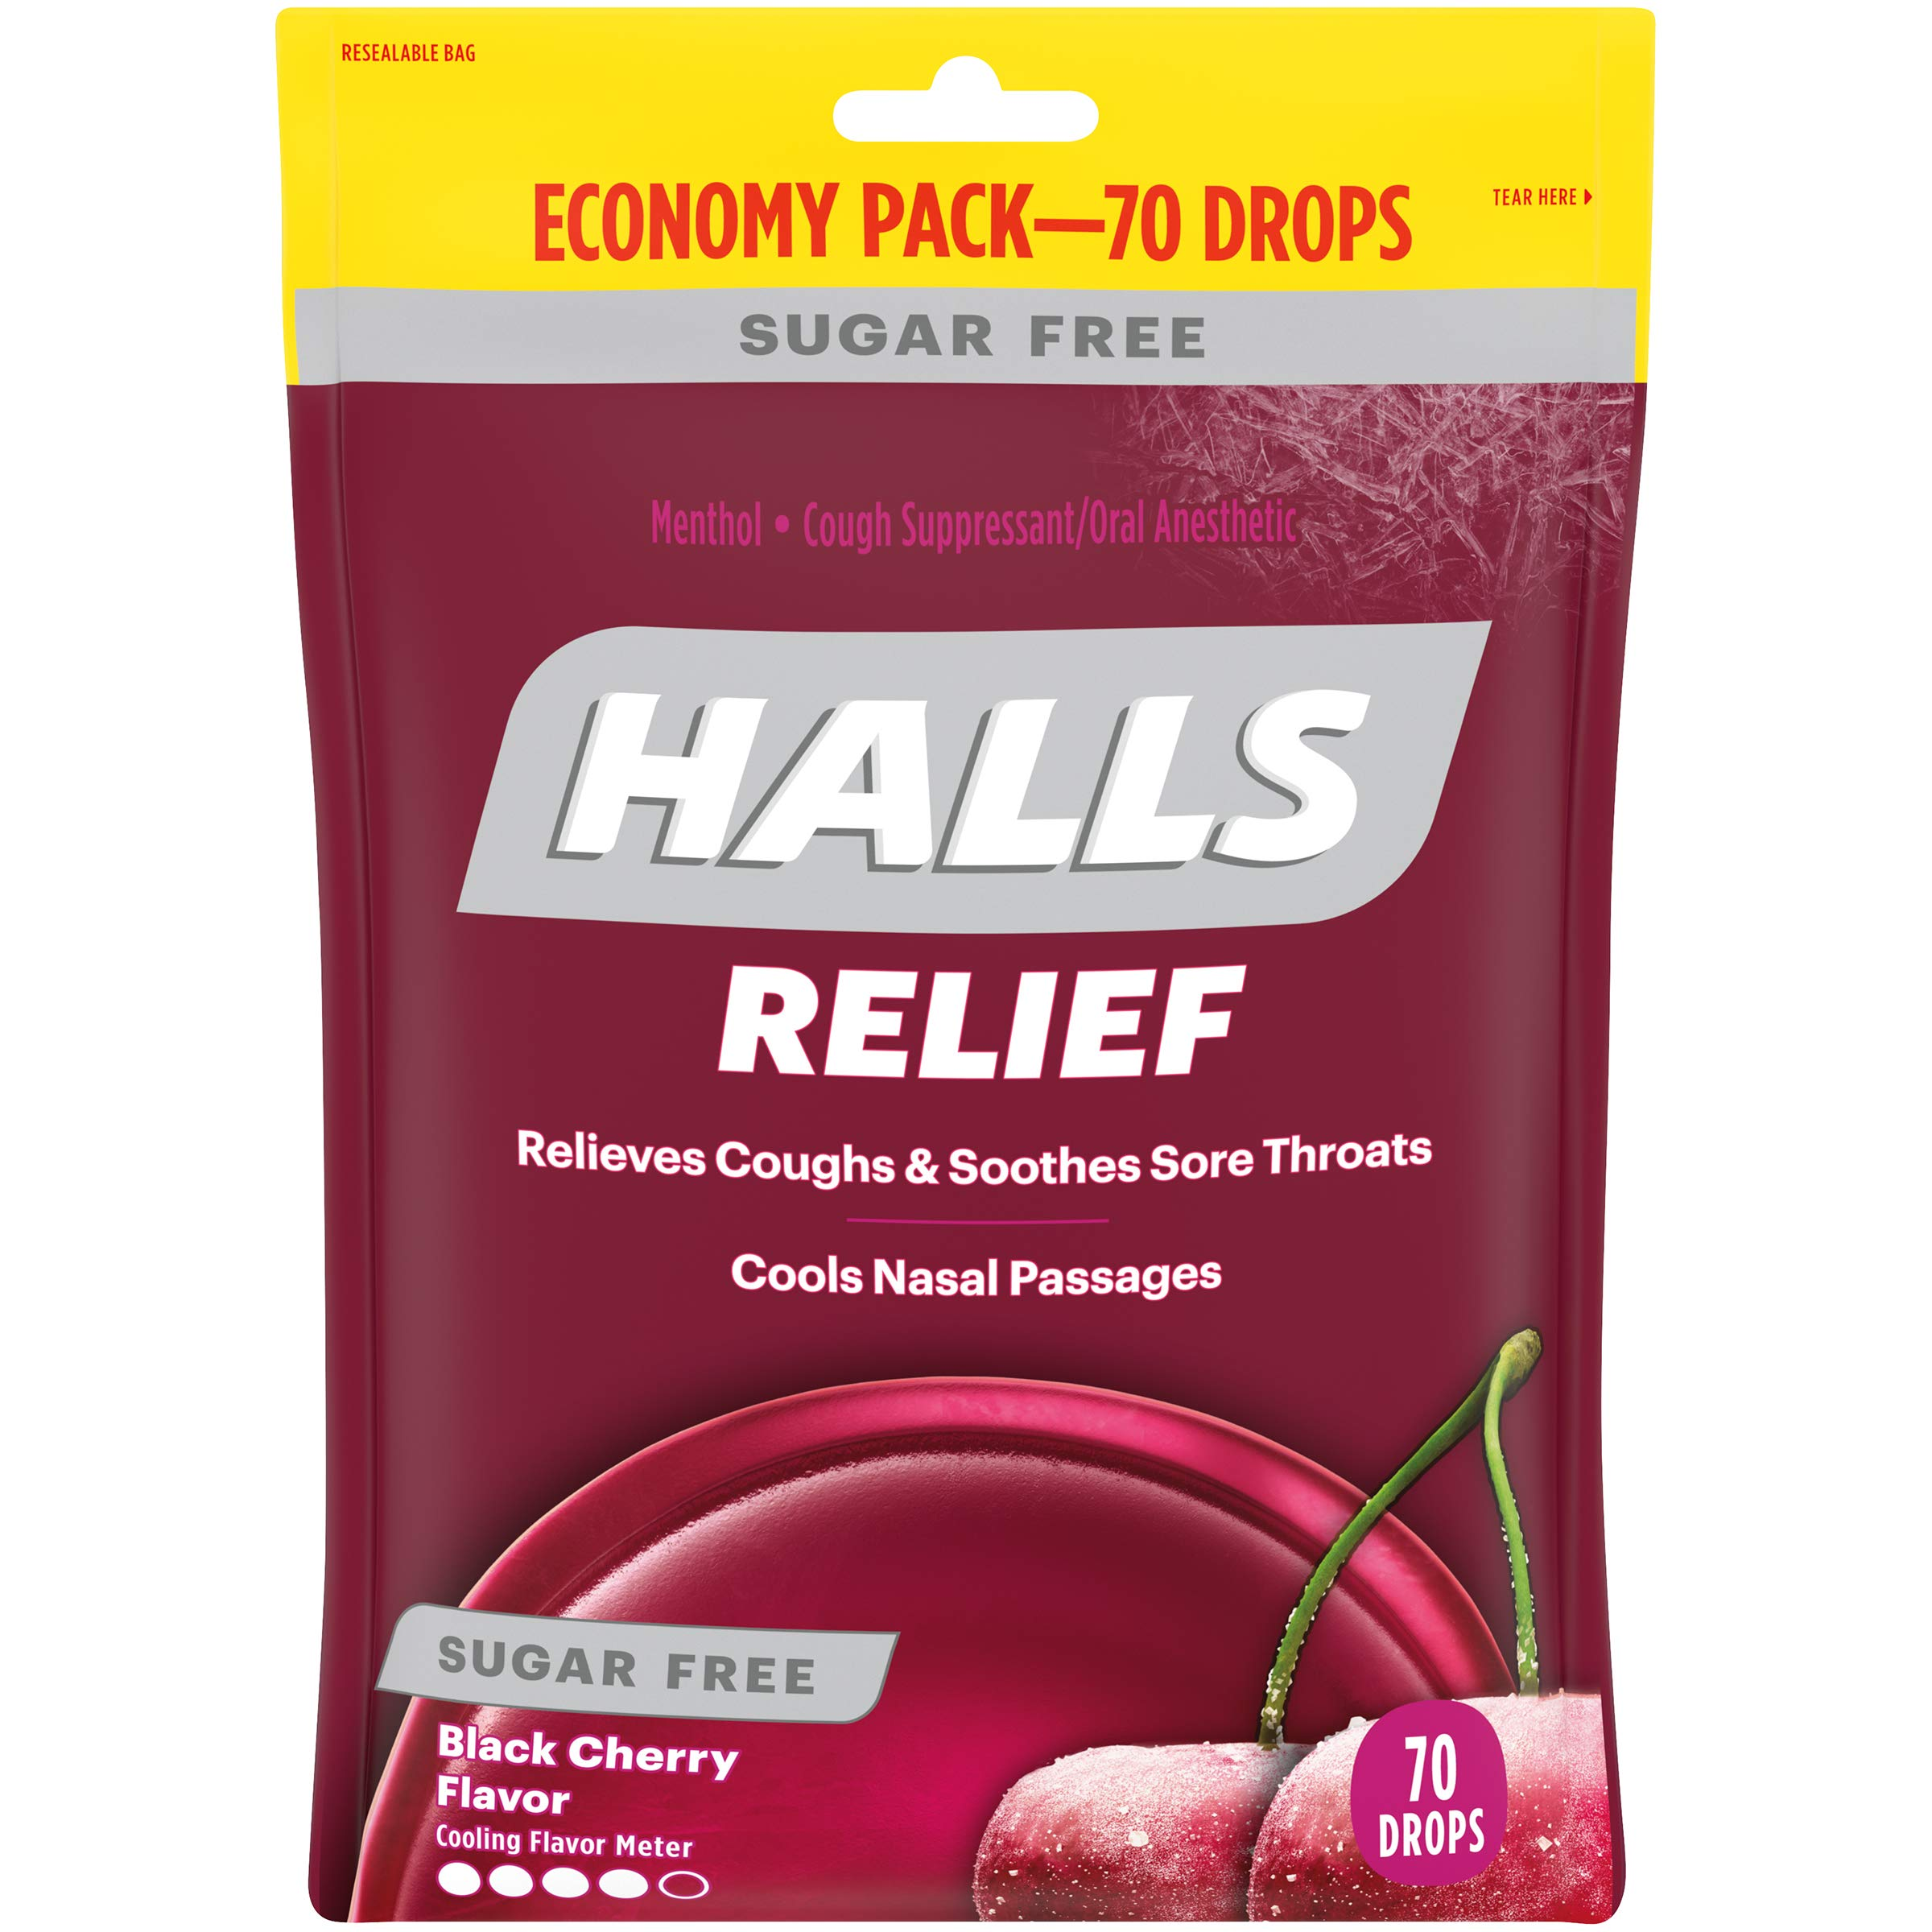 Halls Black Cherry Sugar Free Cough Drops - with Menthol - 840 Drops (12 bags of 70 drops) by Halls